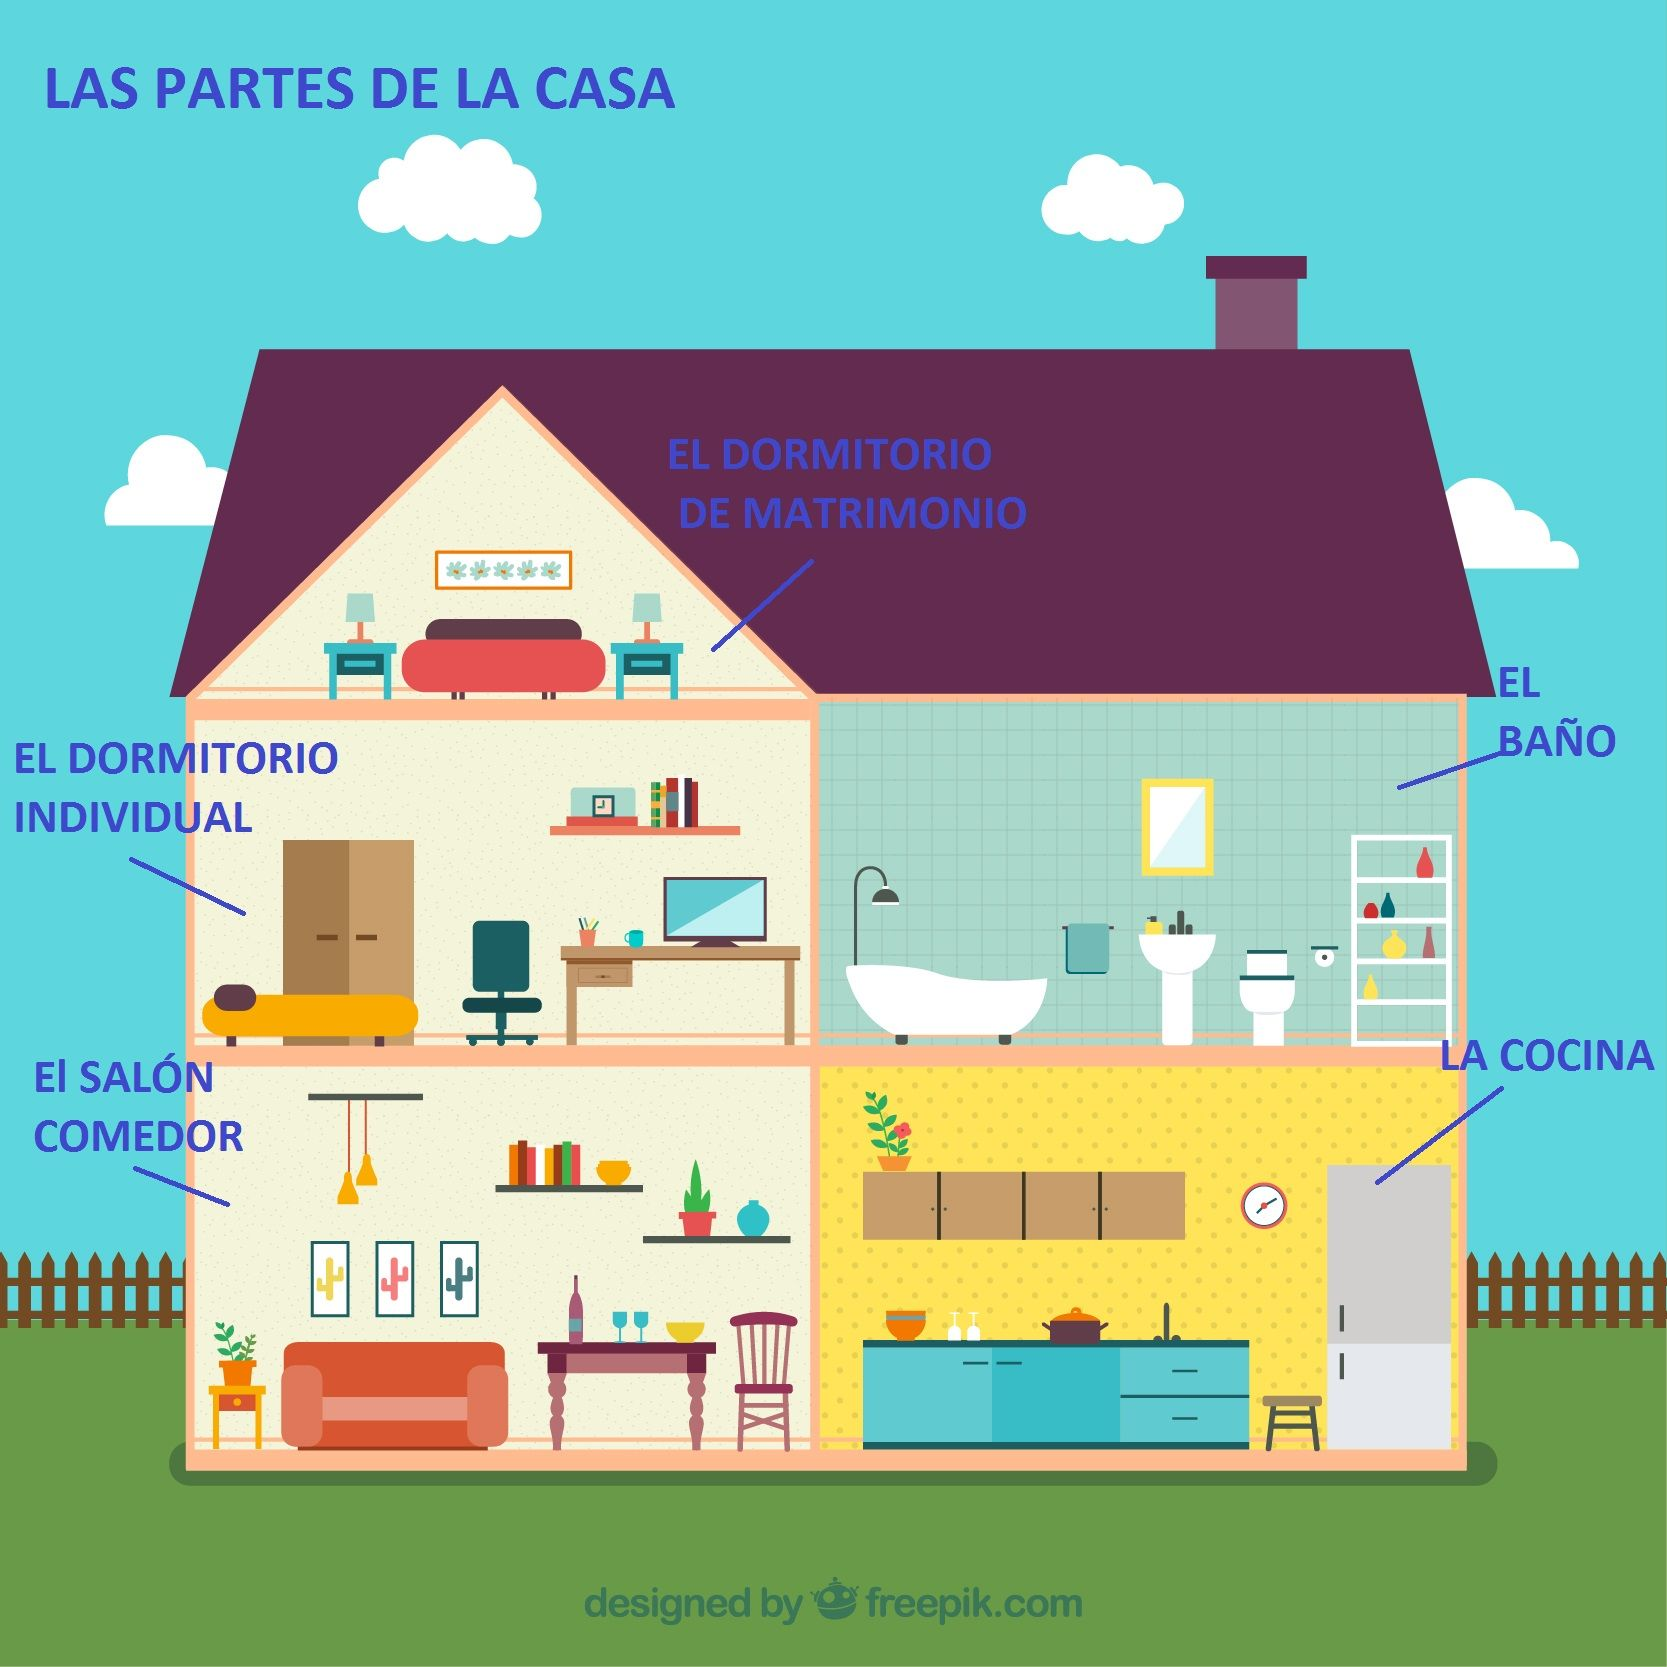 Las partes de la casa tools for school pinterest for Floors of the house in spanish